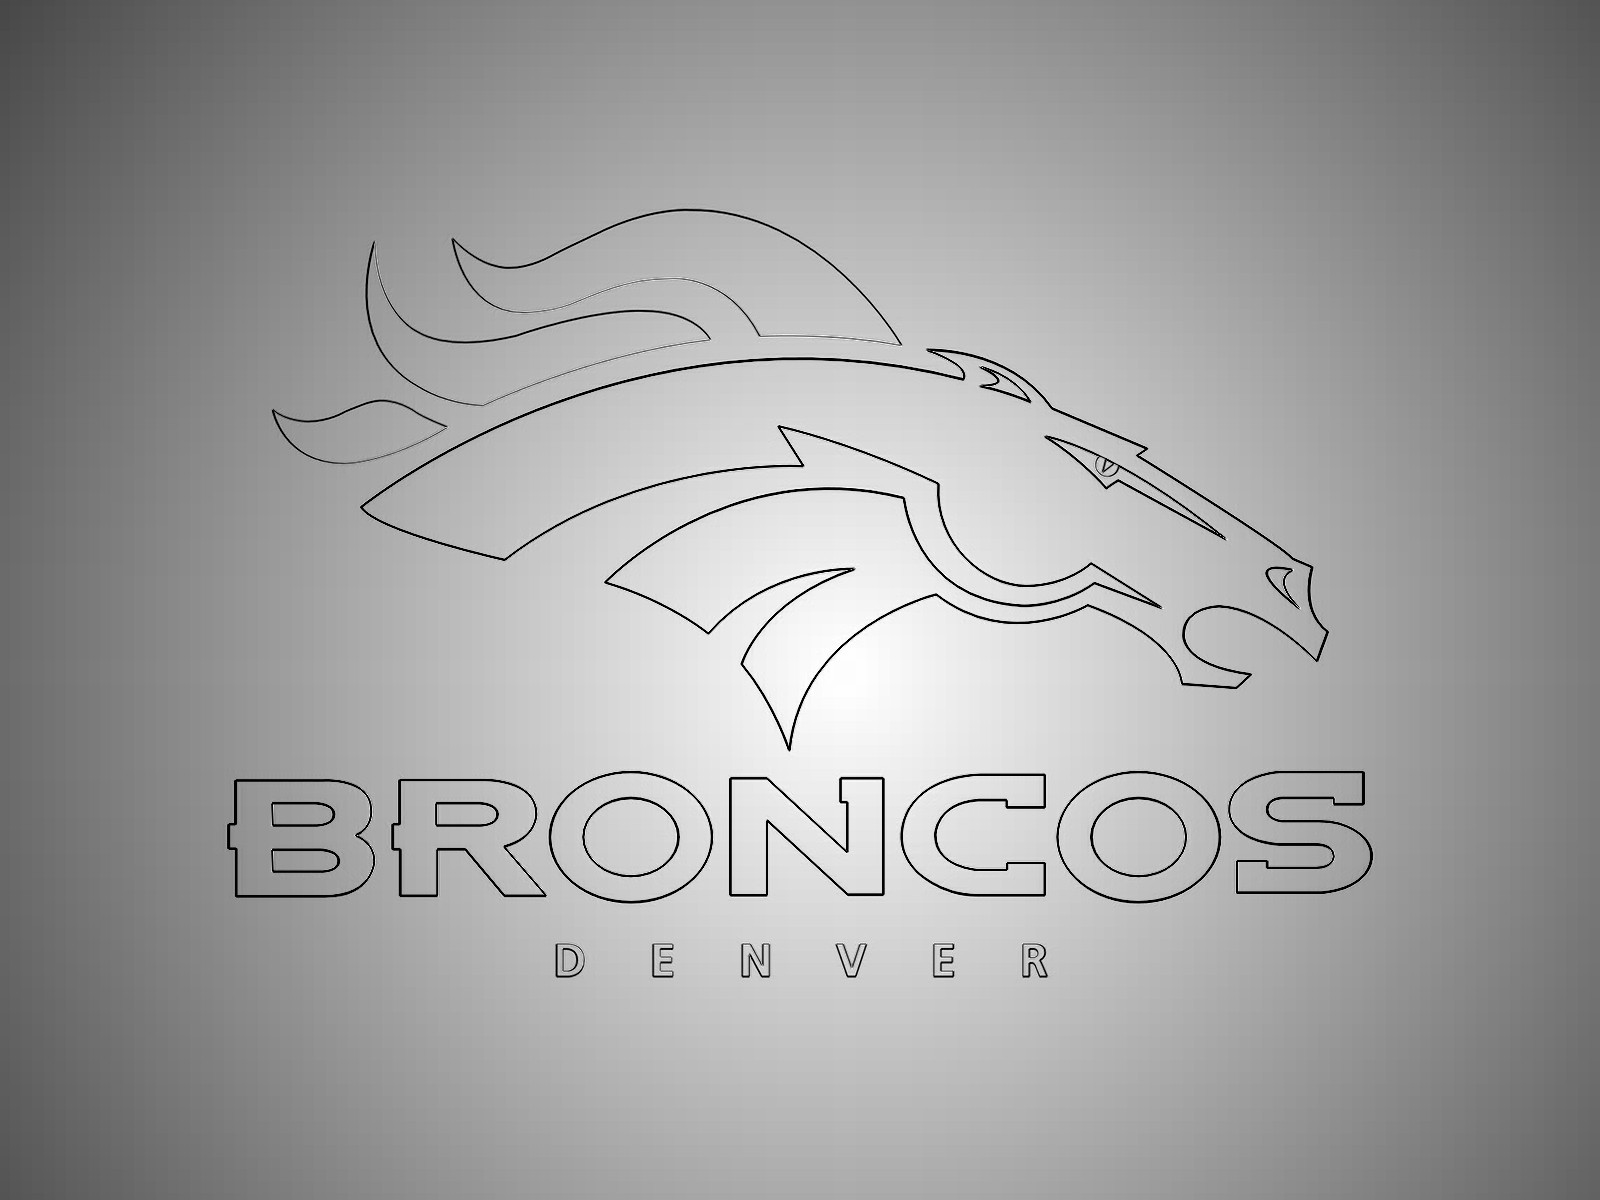 Logo-Denver-Broncos-Desktop-Background